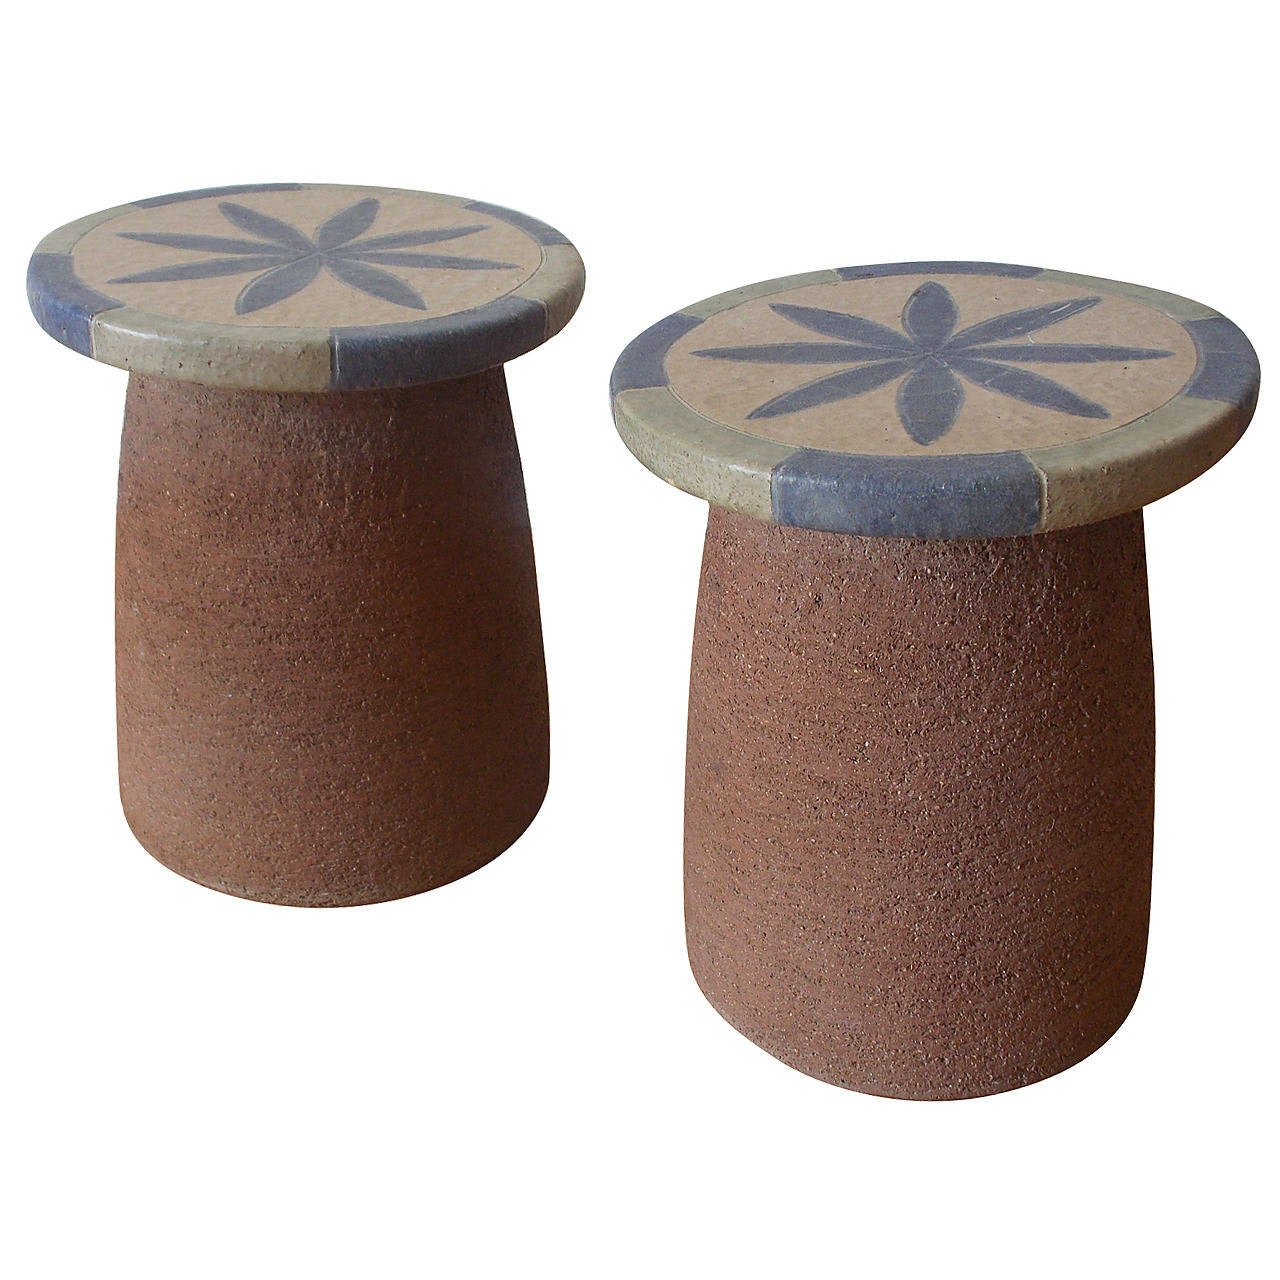 Stan Bitters Pair Of Ceramic Sculpture Stools Or Tables At